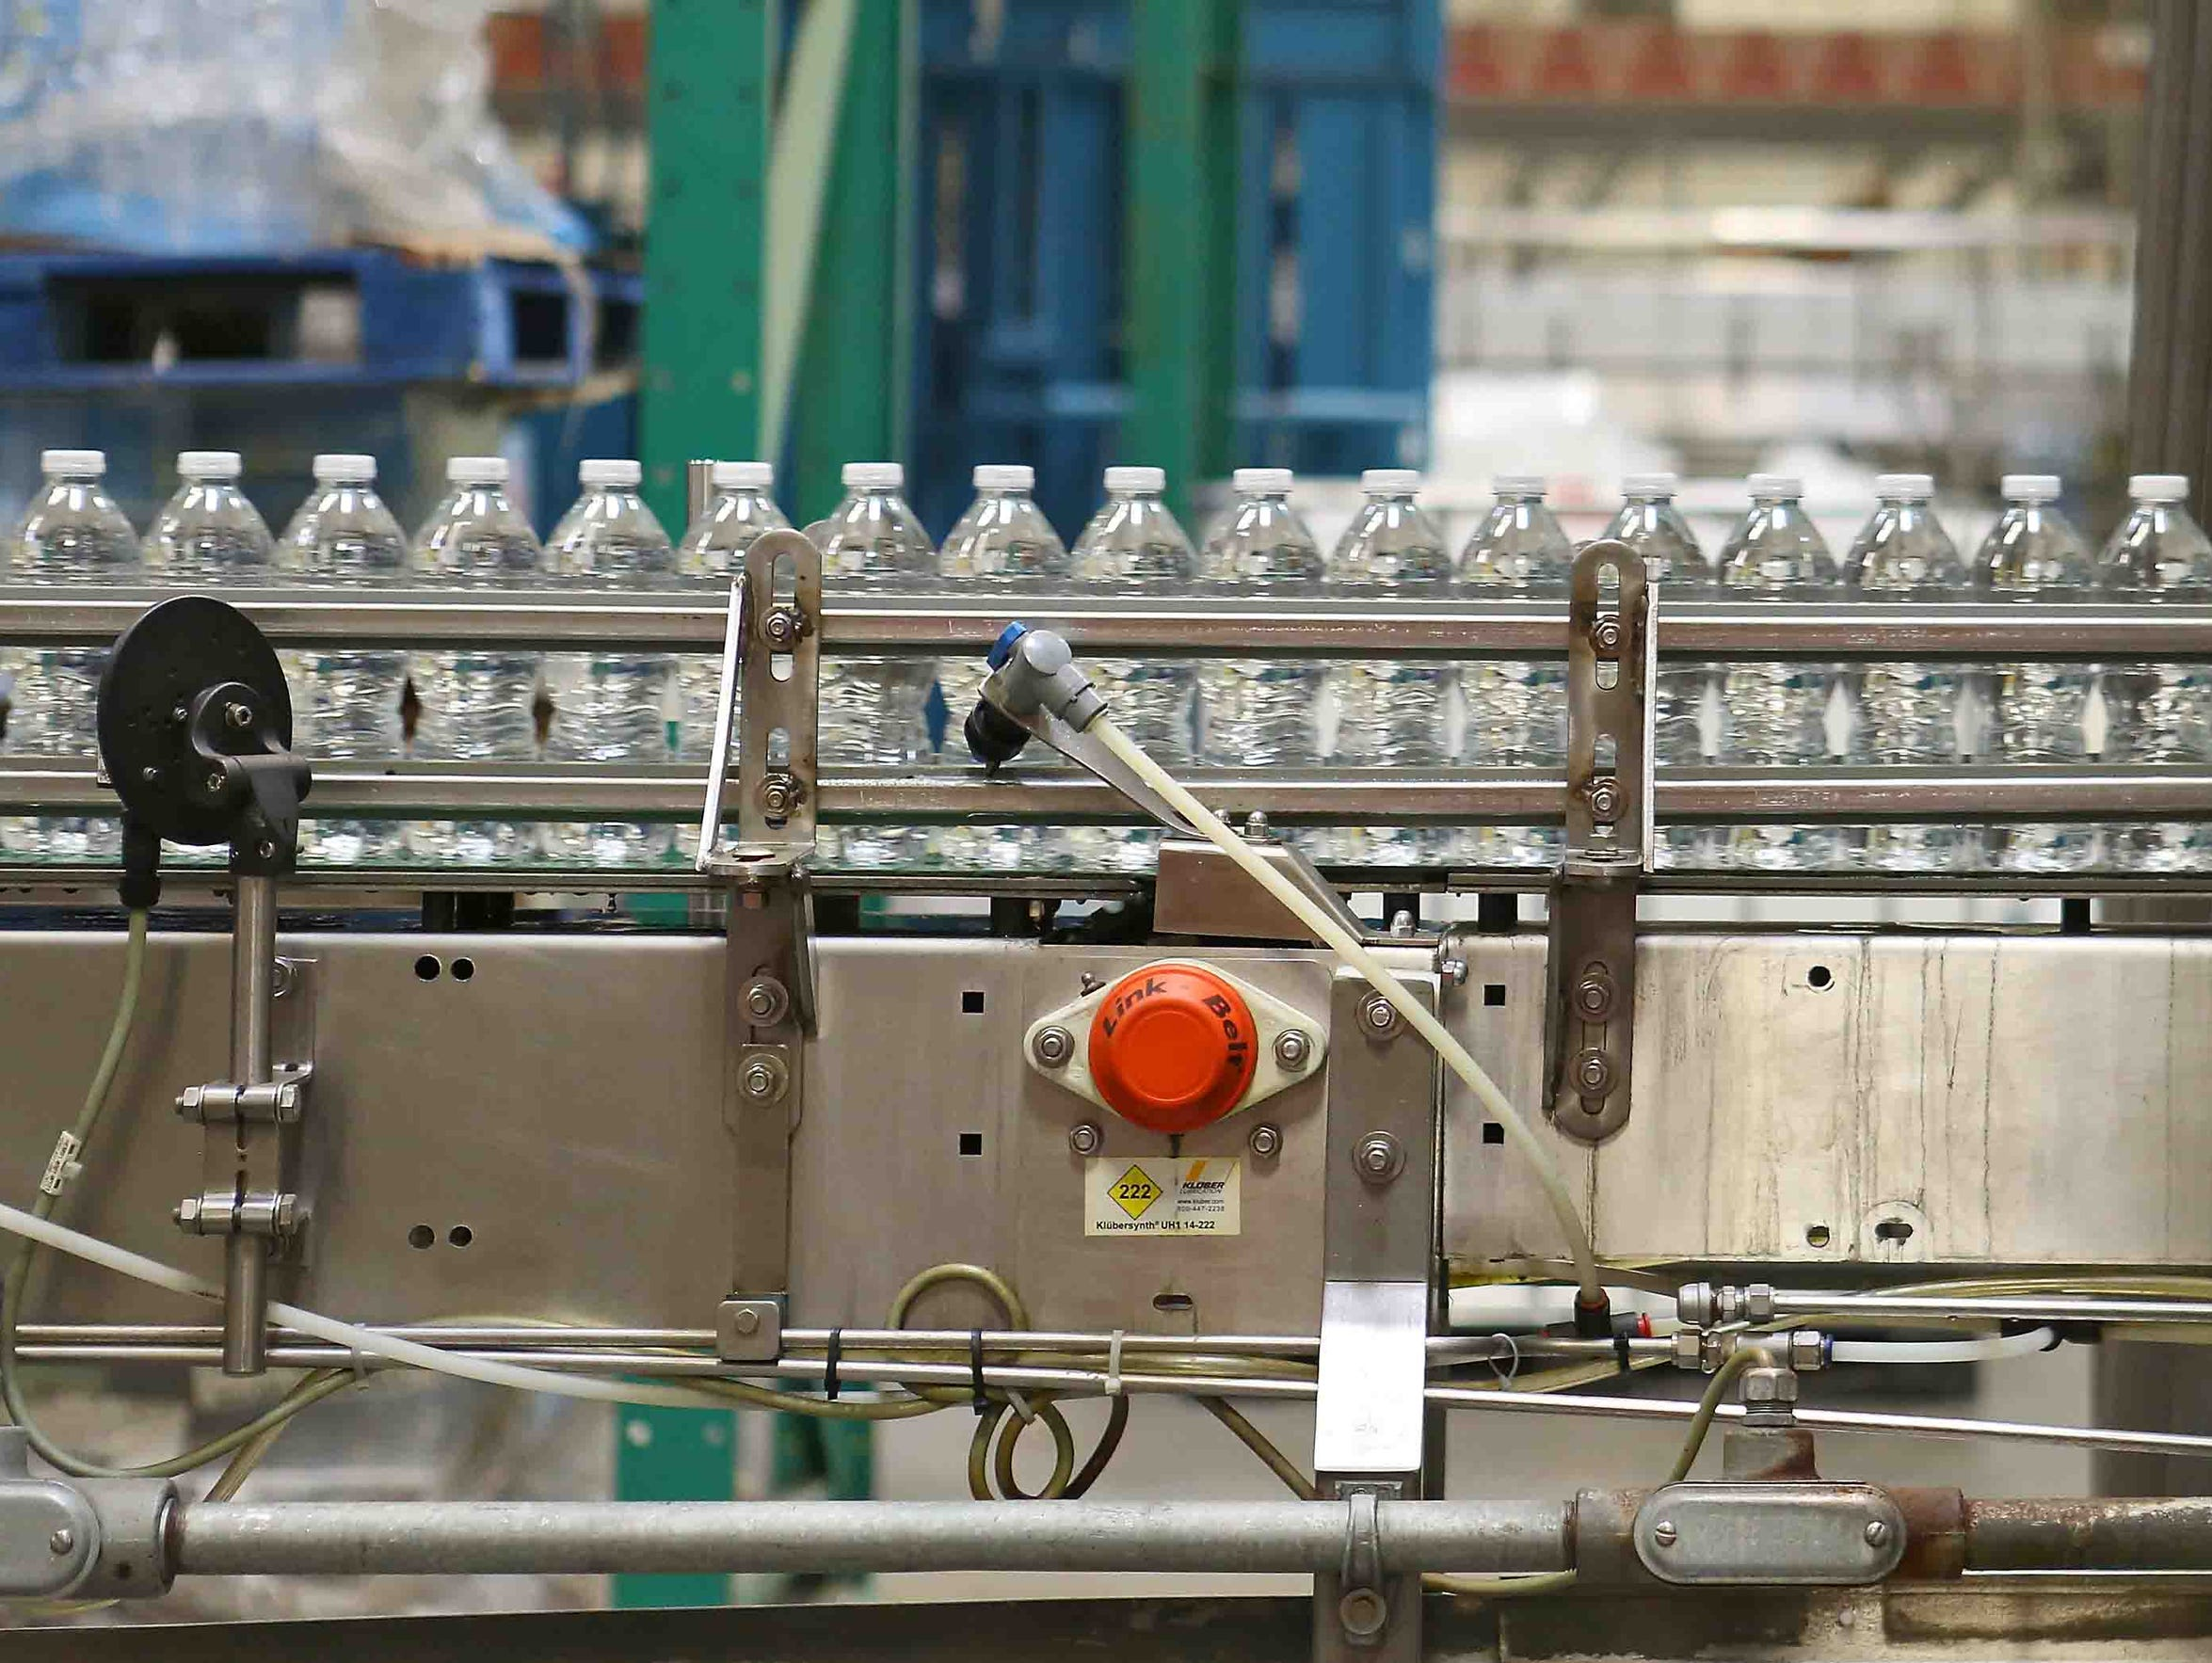 Bottles of water move on a conveyor belt at the Nestle